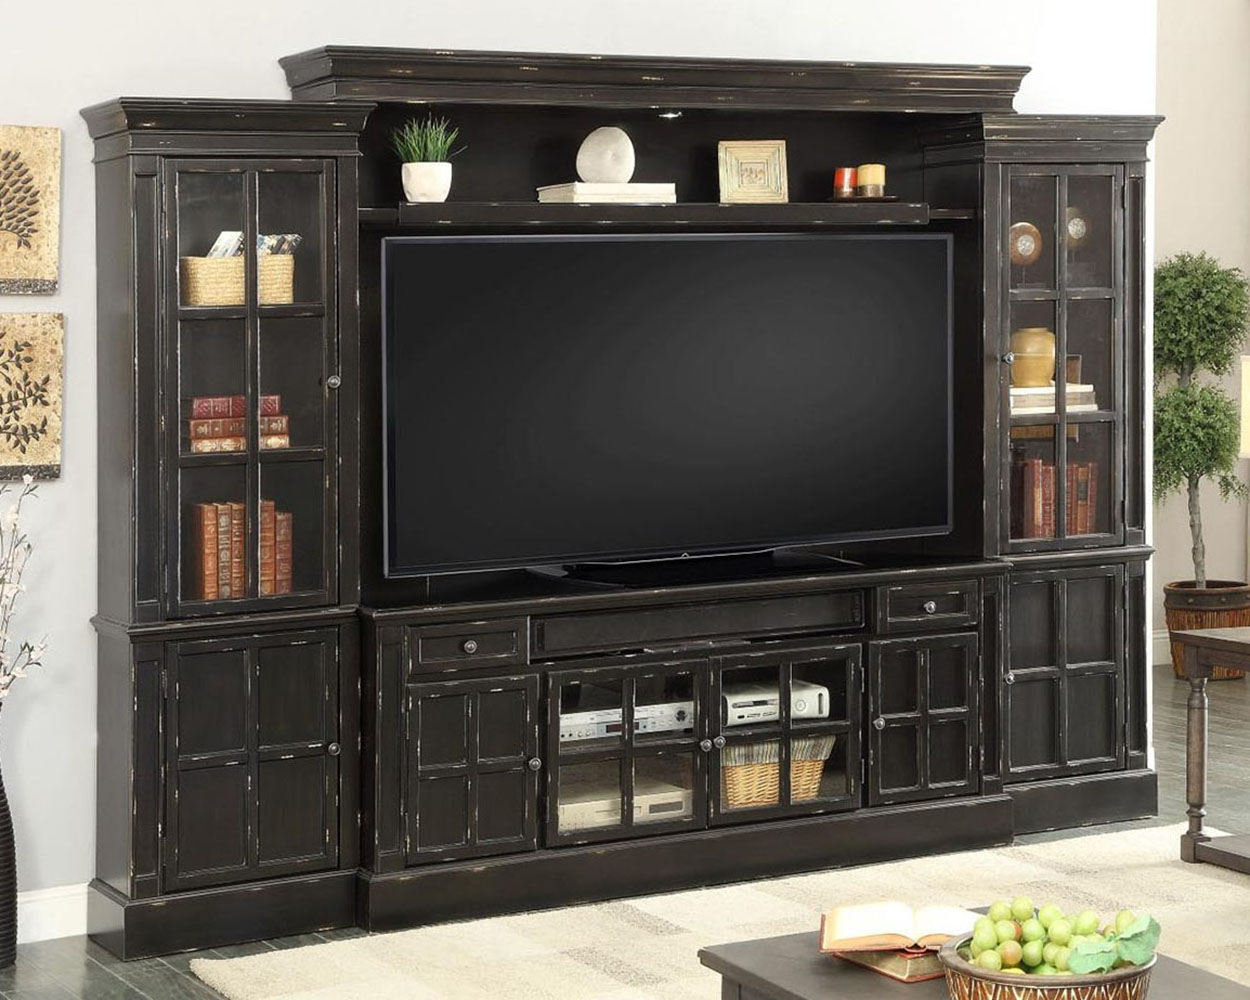 Home Entertainment Wall Units parker house 72in tv entertainment center wall unit concord ph-con